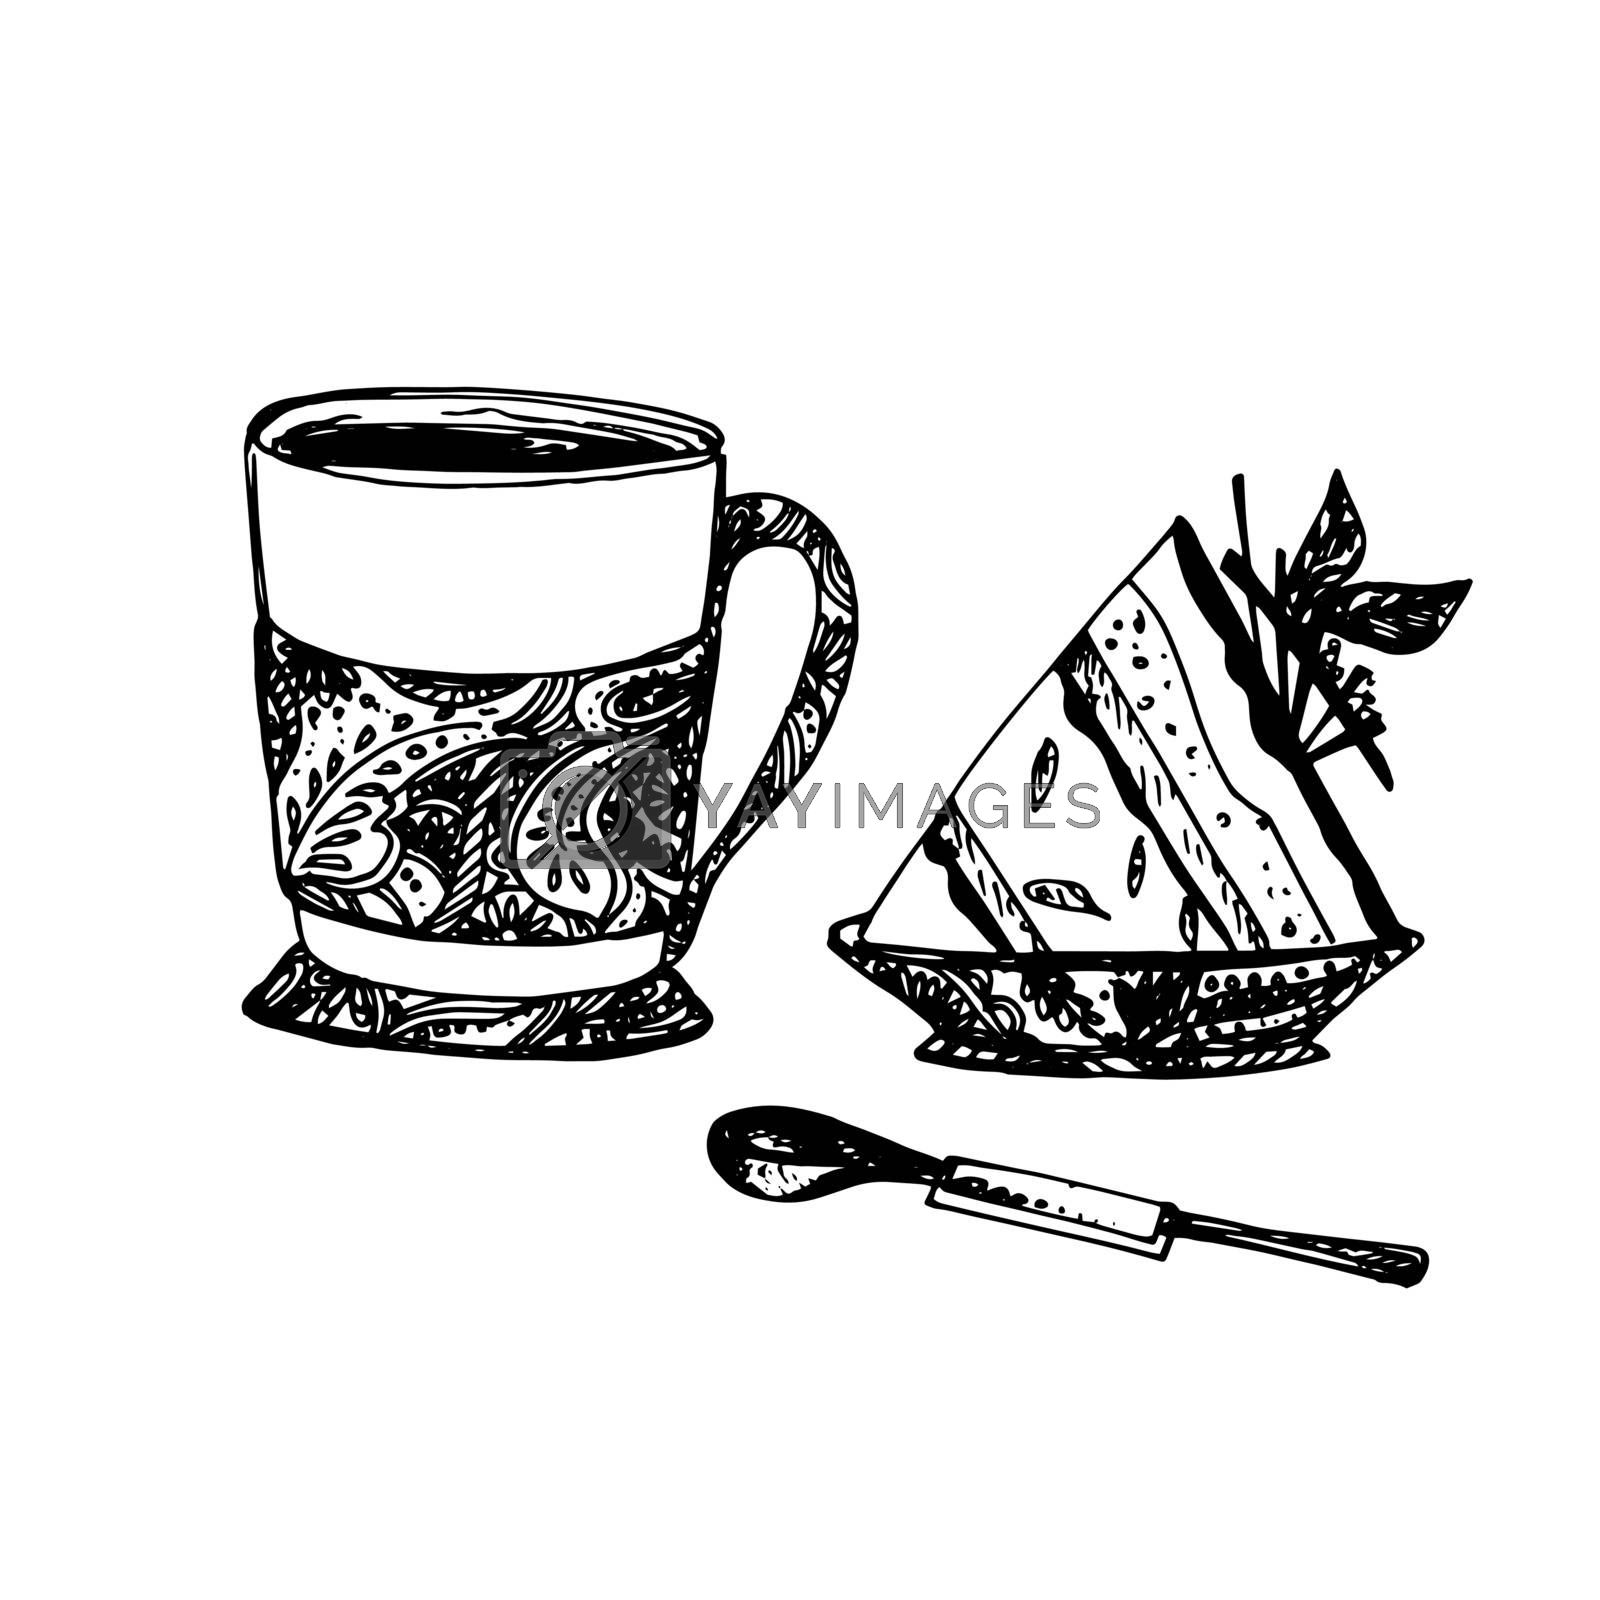 Hand Drawn Sketch of Tea Cup with Delicious Cheesecake and Teaspoon. Vintage Sketch. Great for Banner, Label, Poster